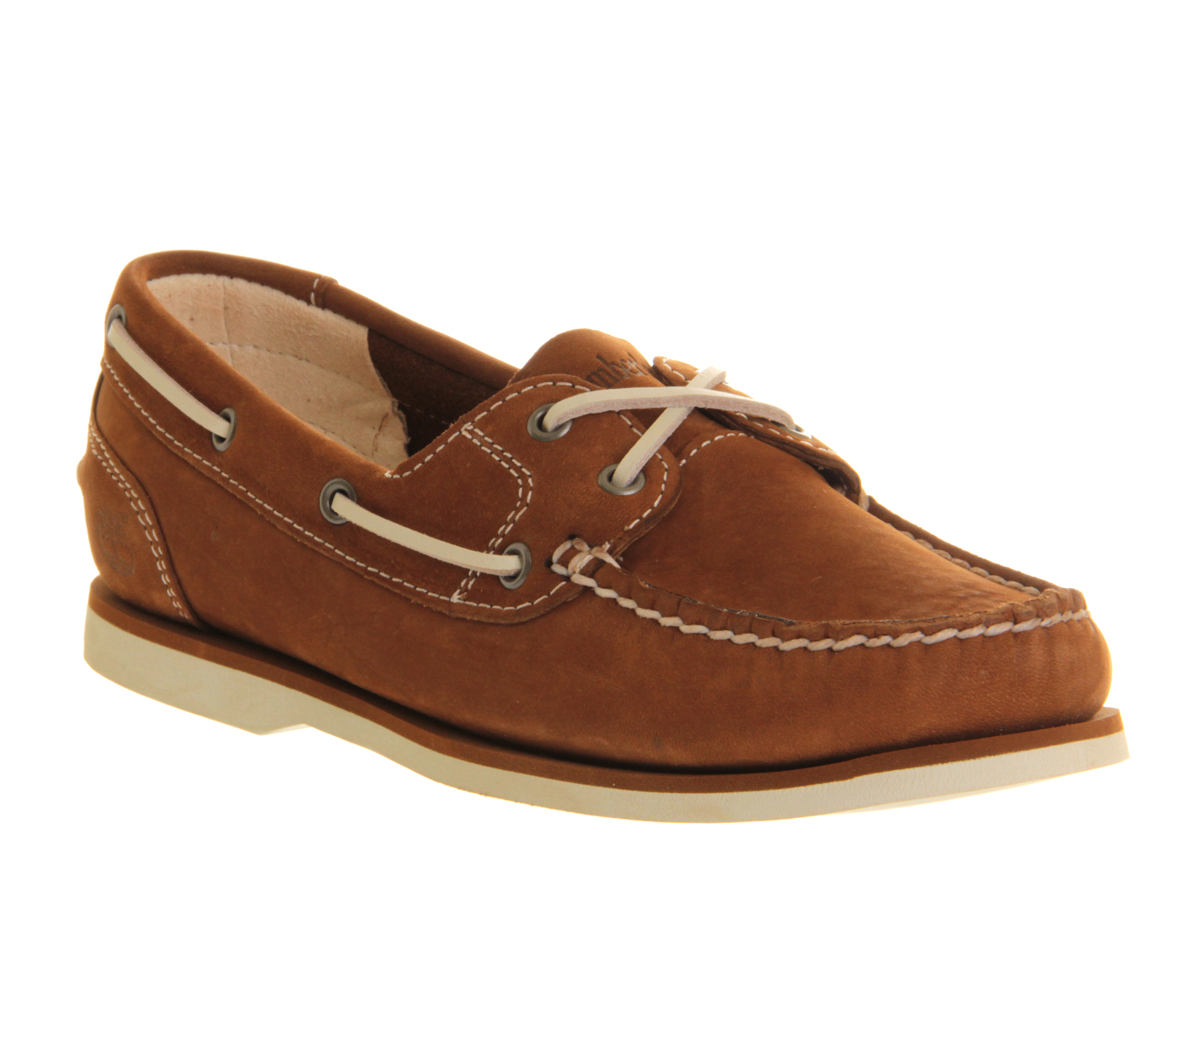 Timberland Classic Leather Boat Shoes Black Friday Sales